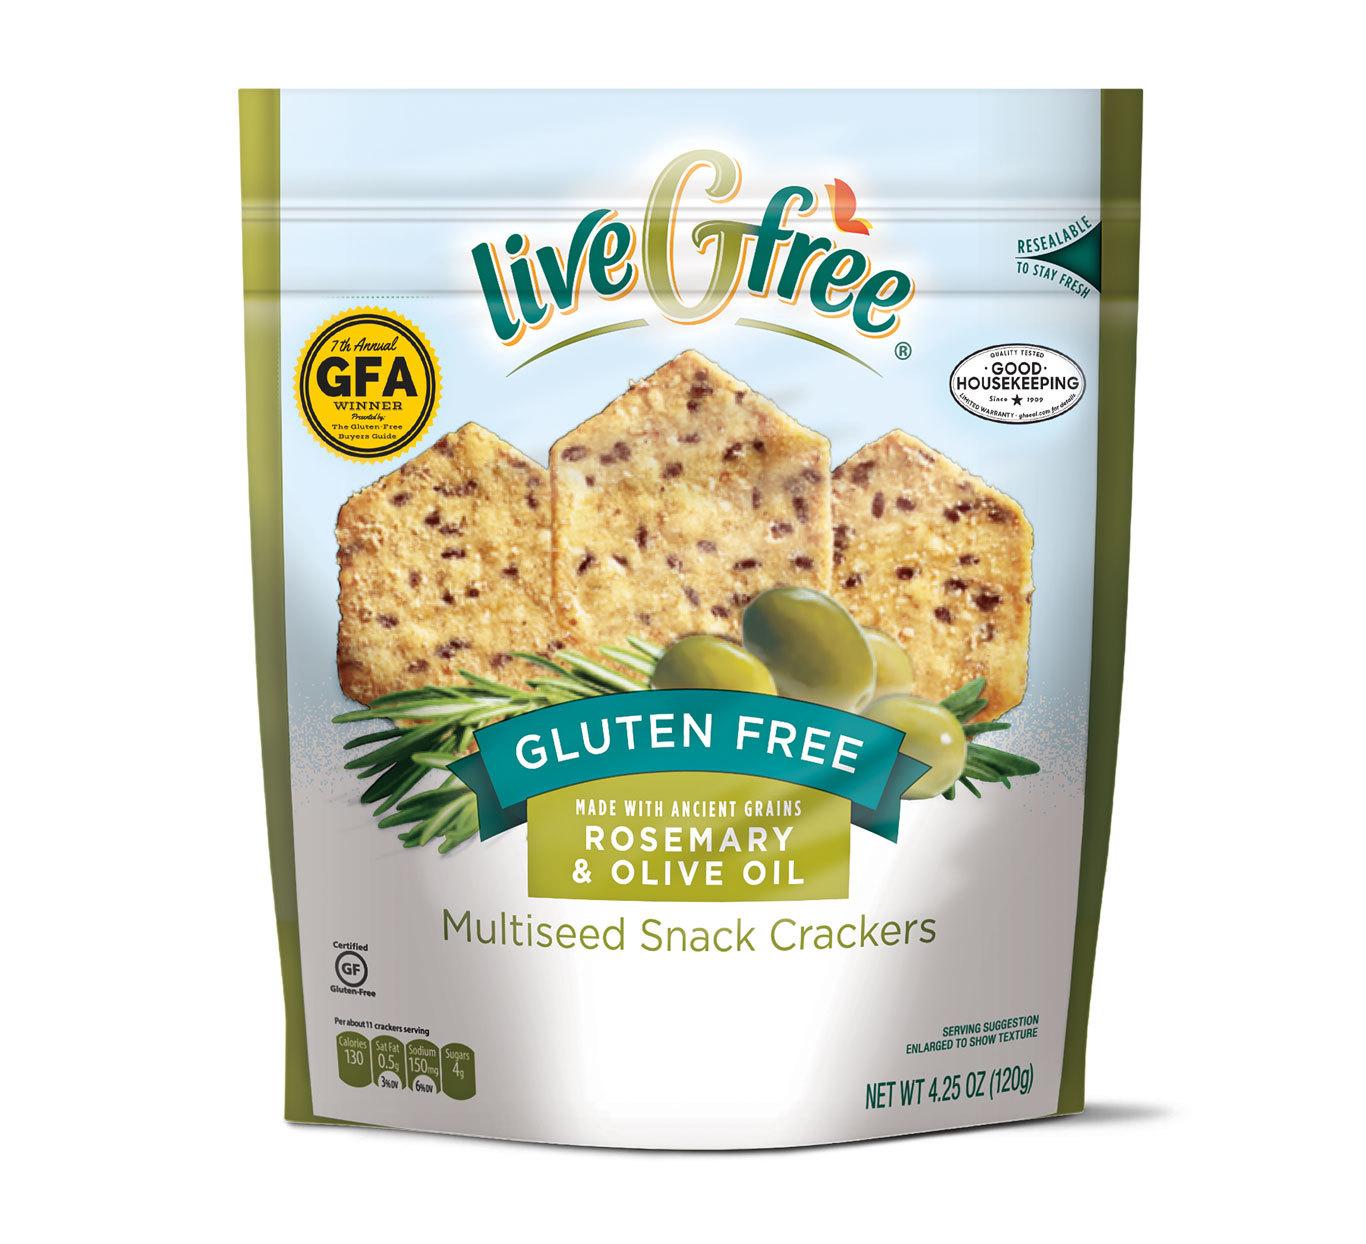 Live Gfree brand Gluten Free Rosemary & Olive Oil Multiseed Snack Crackers